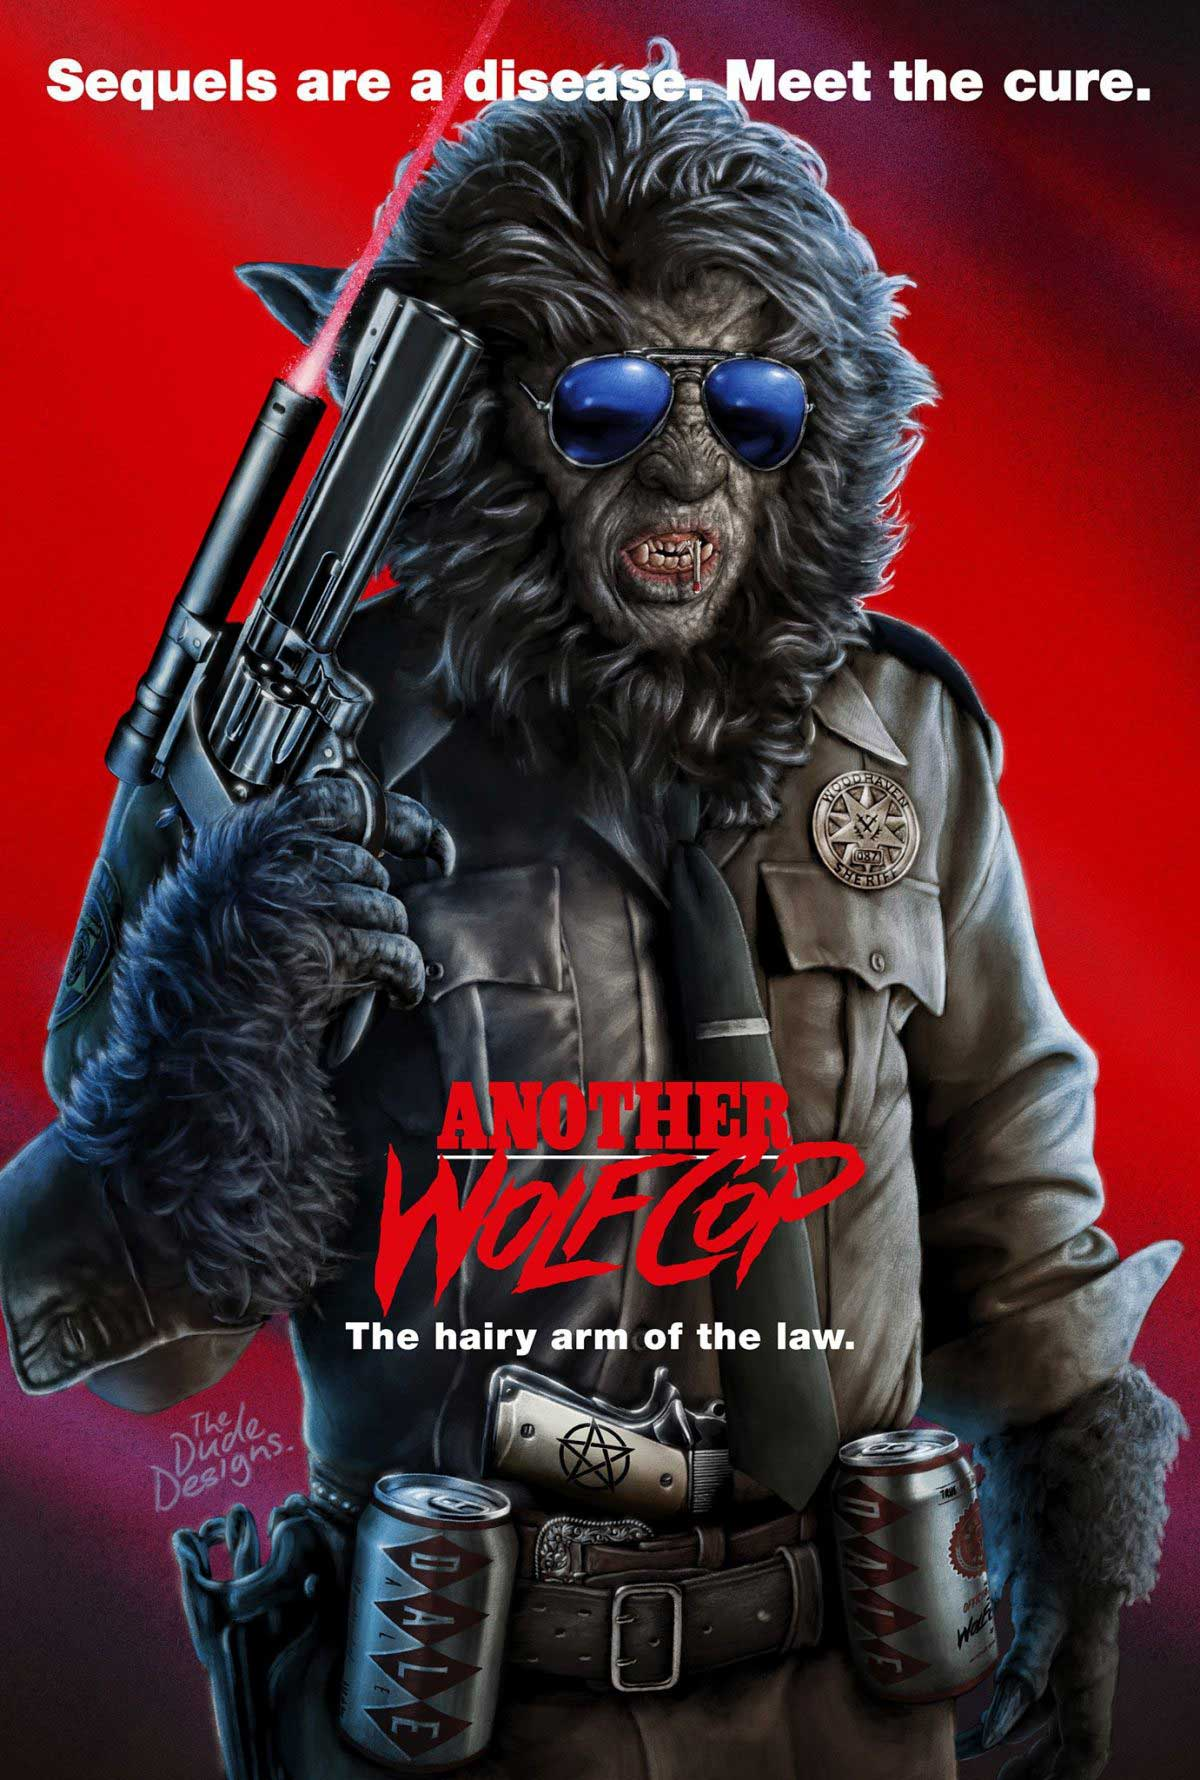 WolCop-2-movie-Another-WolfCop_1200_1780_81_s